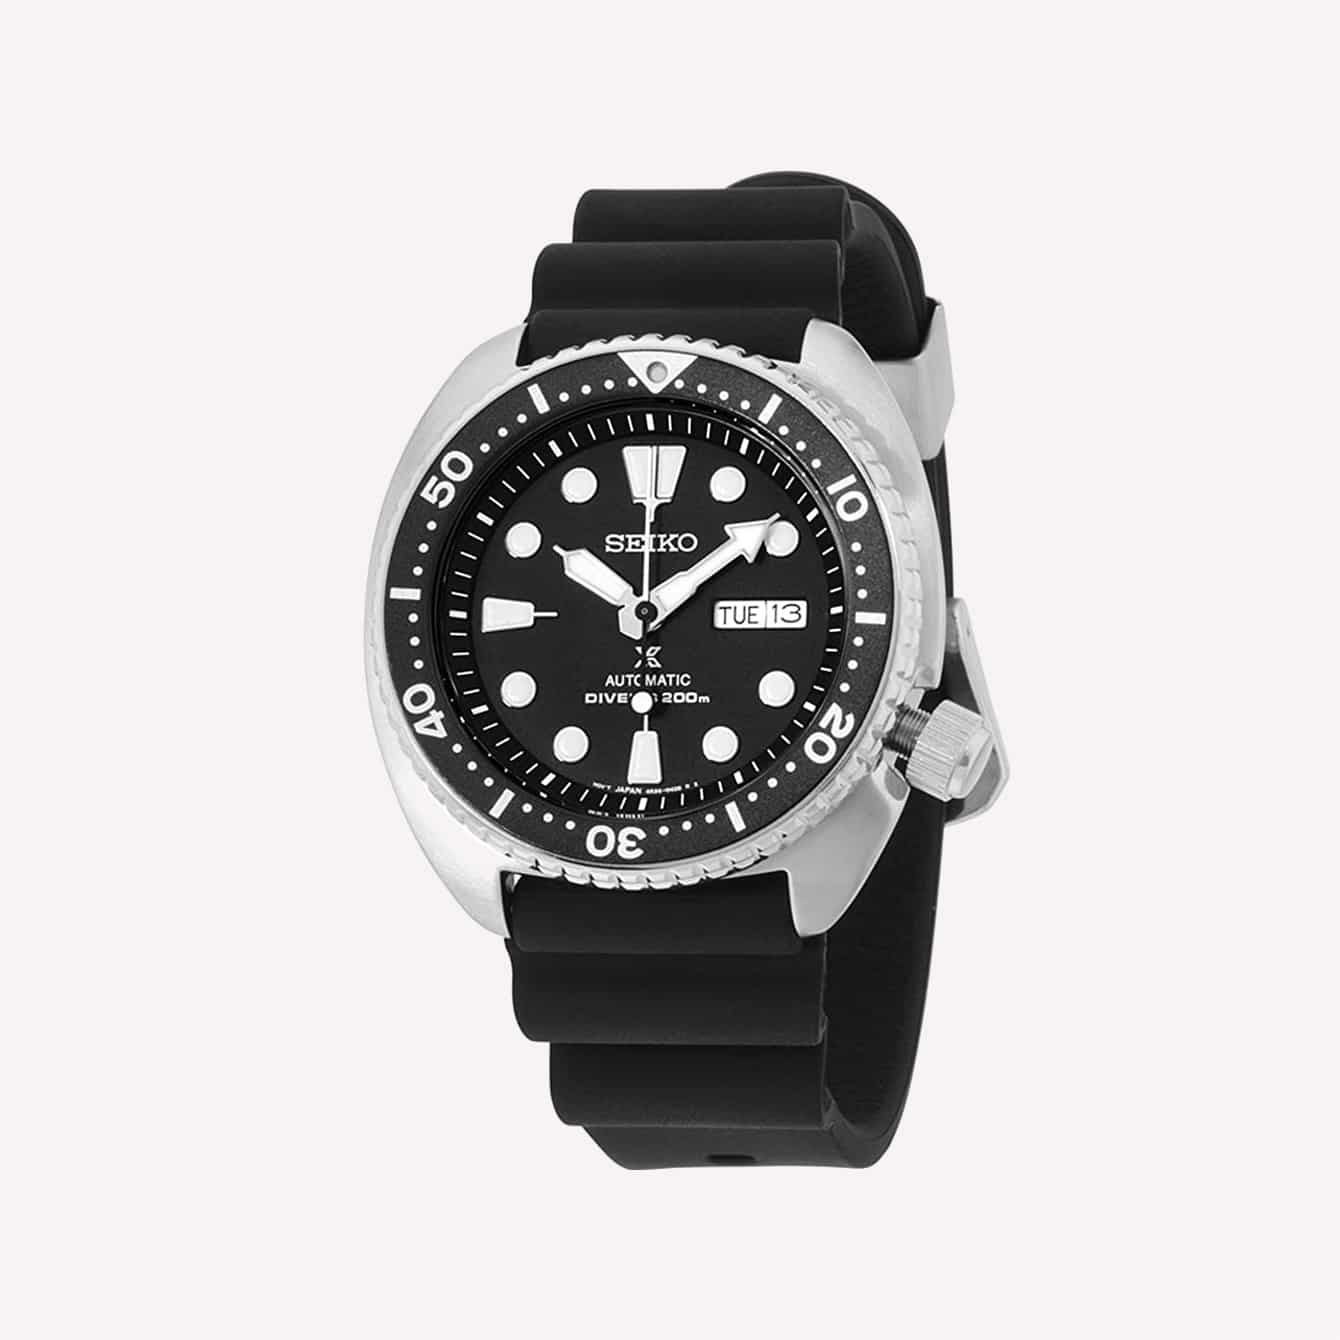 SEIKO SRP777 PROSPEX AUTOMATIC DIVERS WATCH